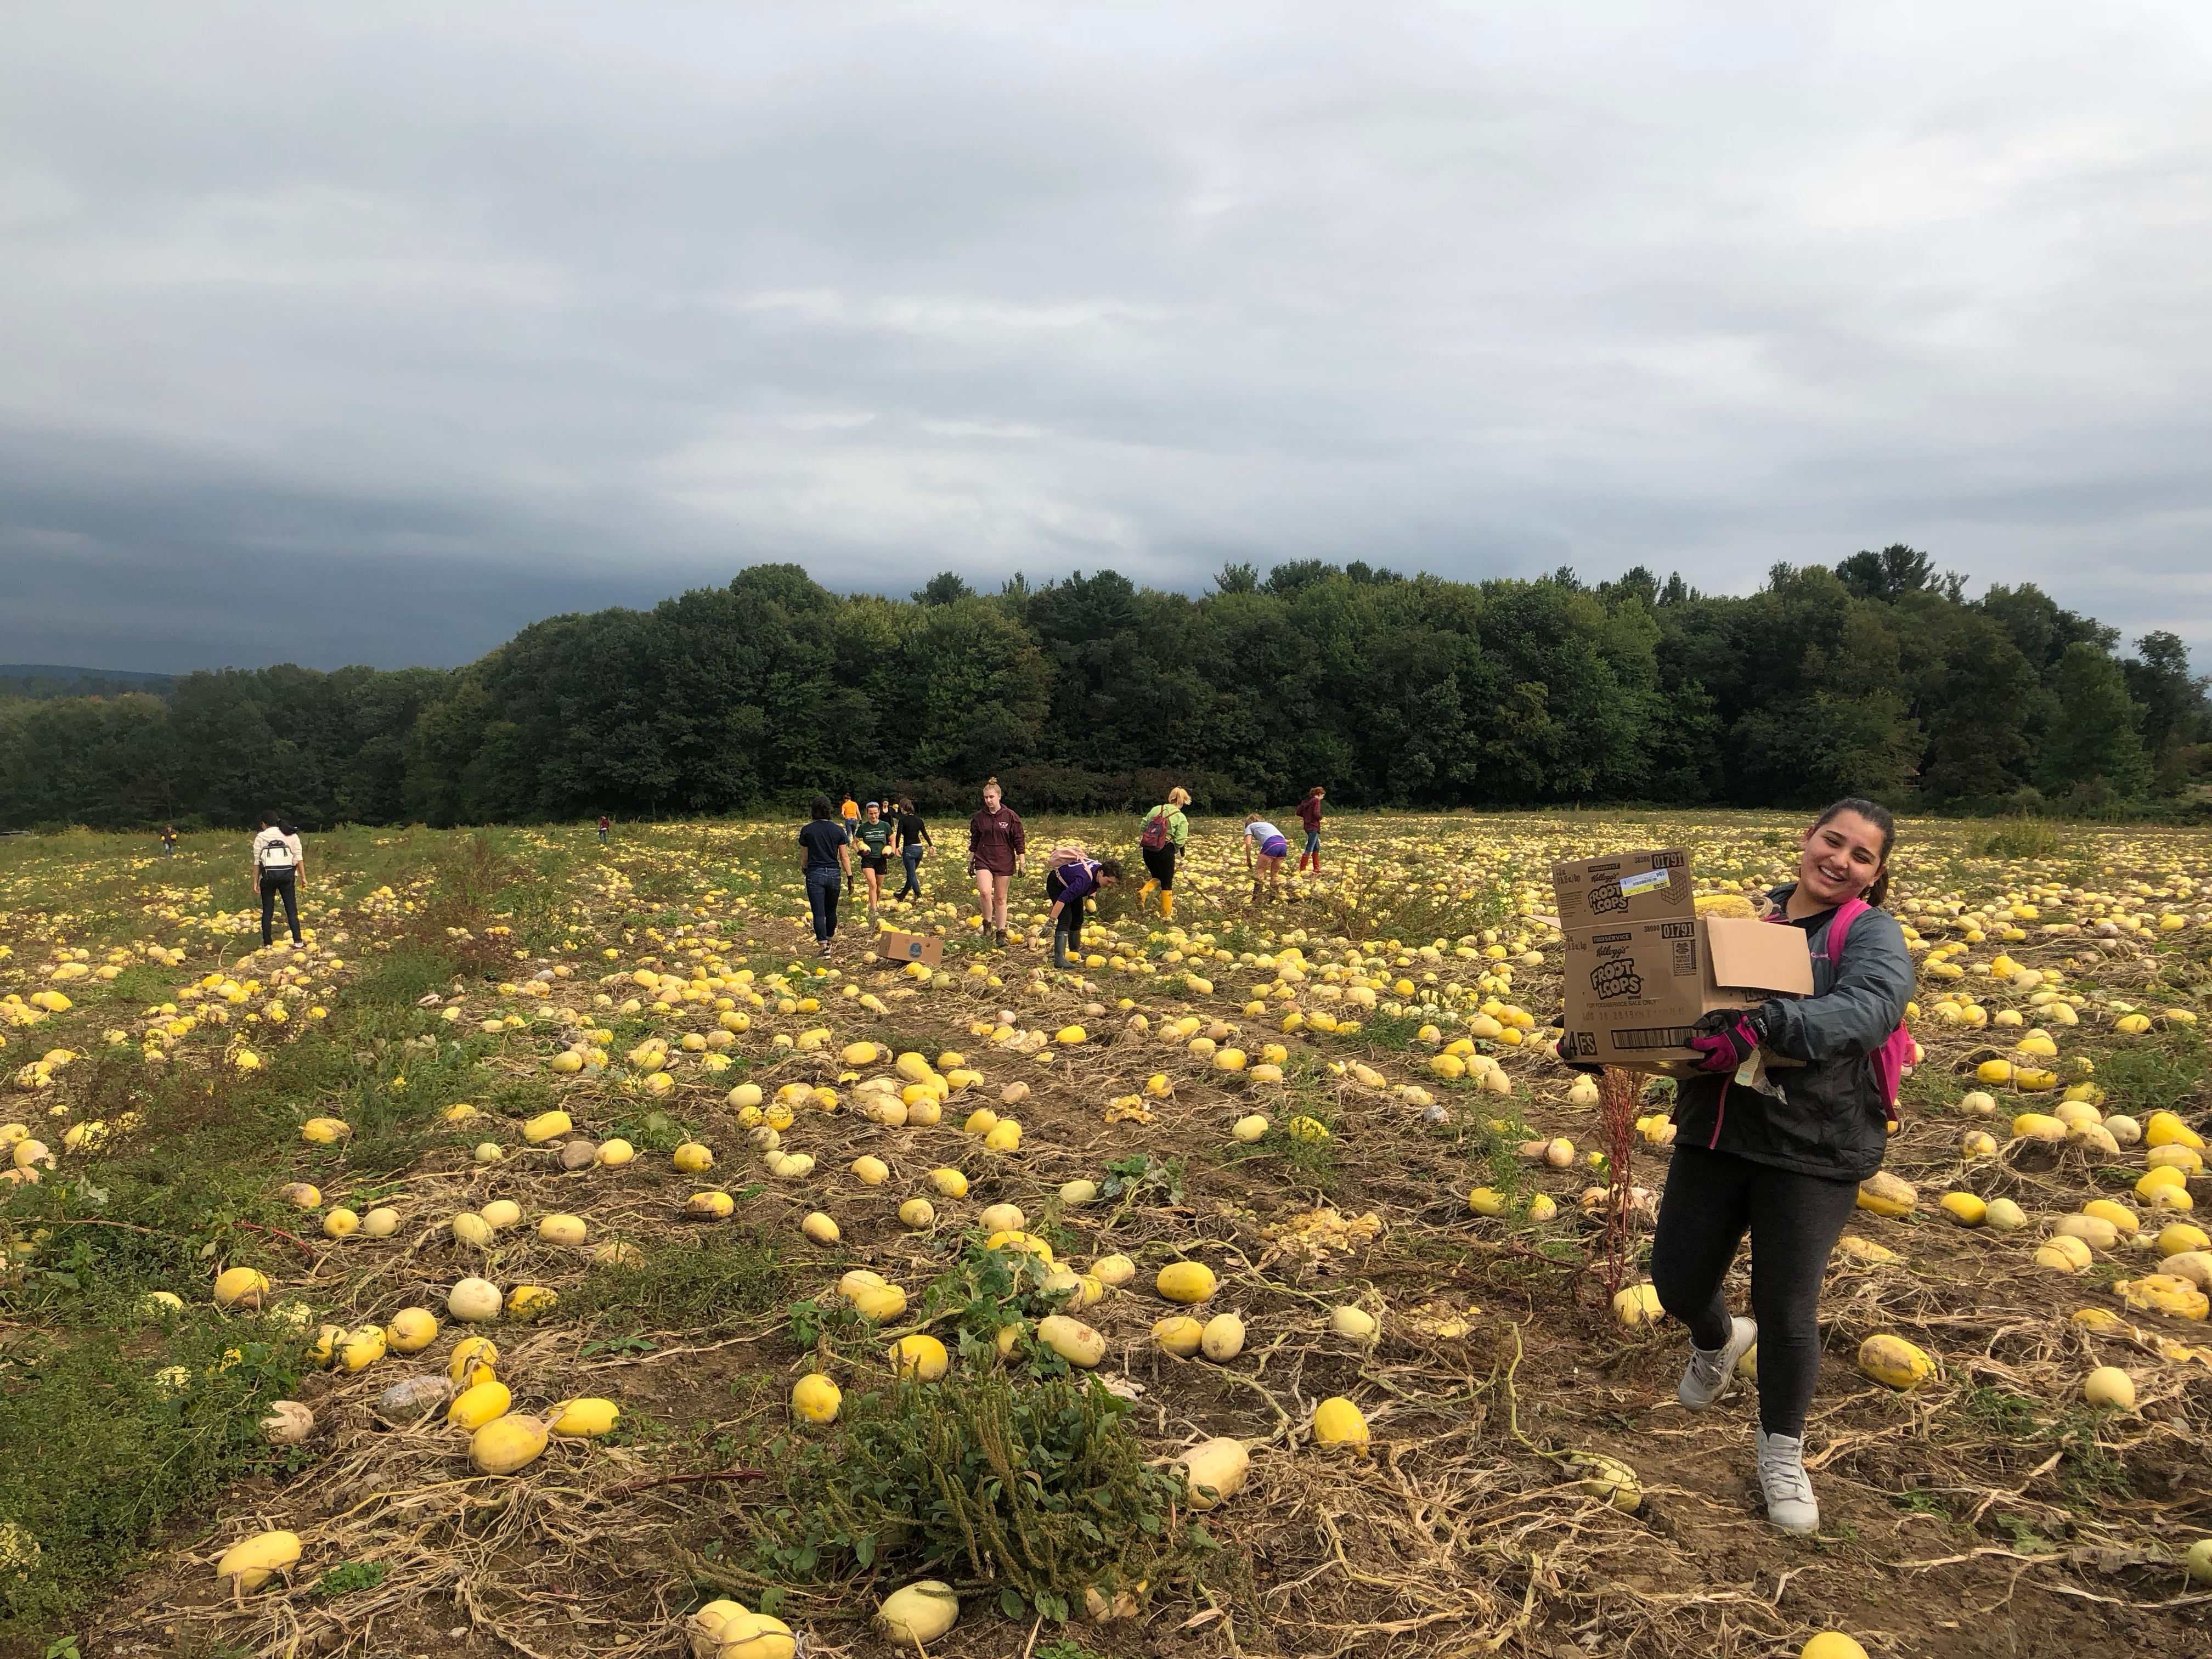 photo of a young, smiling woman carrying a box of vegetables in the foreground of a large field of spaghetti squash, oblong yellow vegetables, while a dozen others in the background also gather squash.